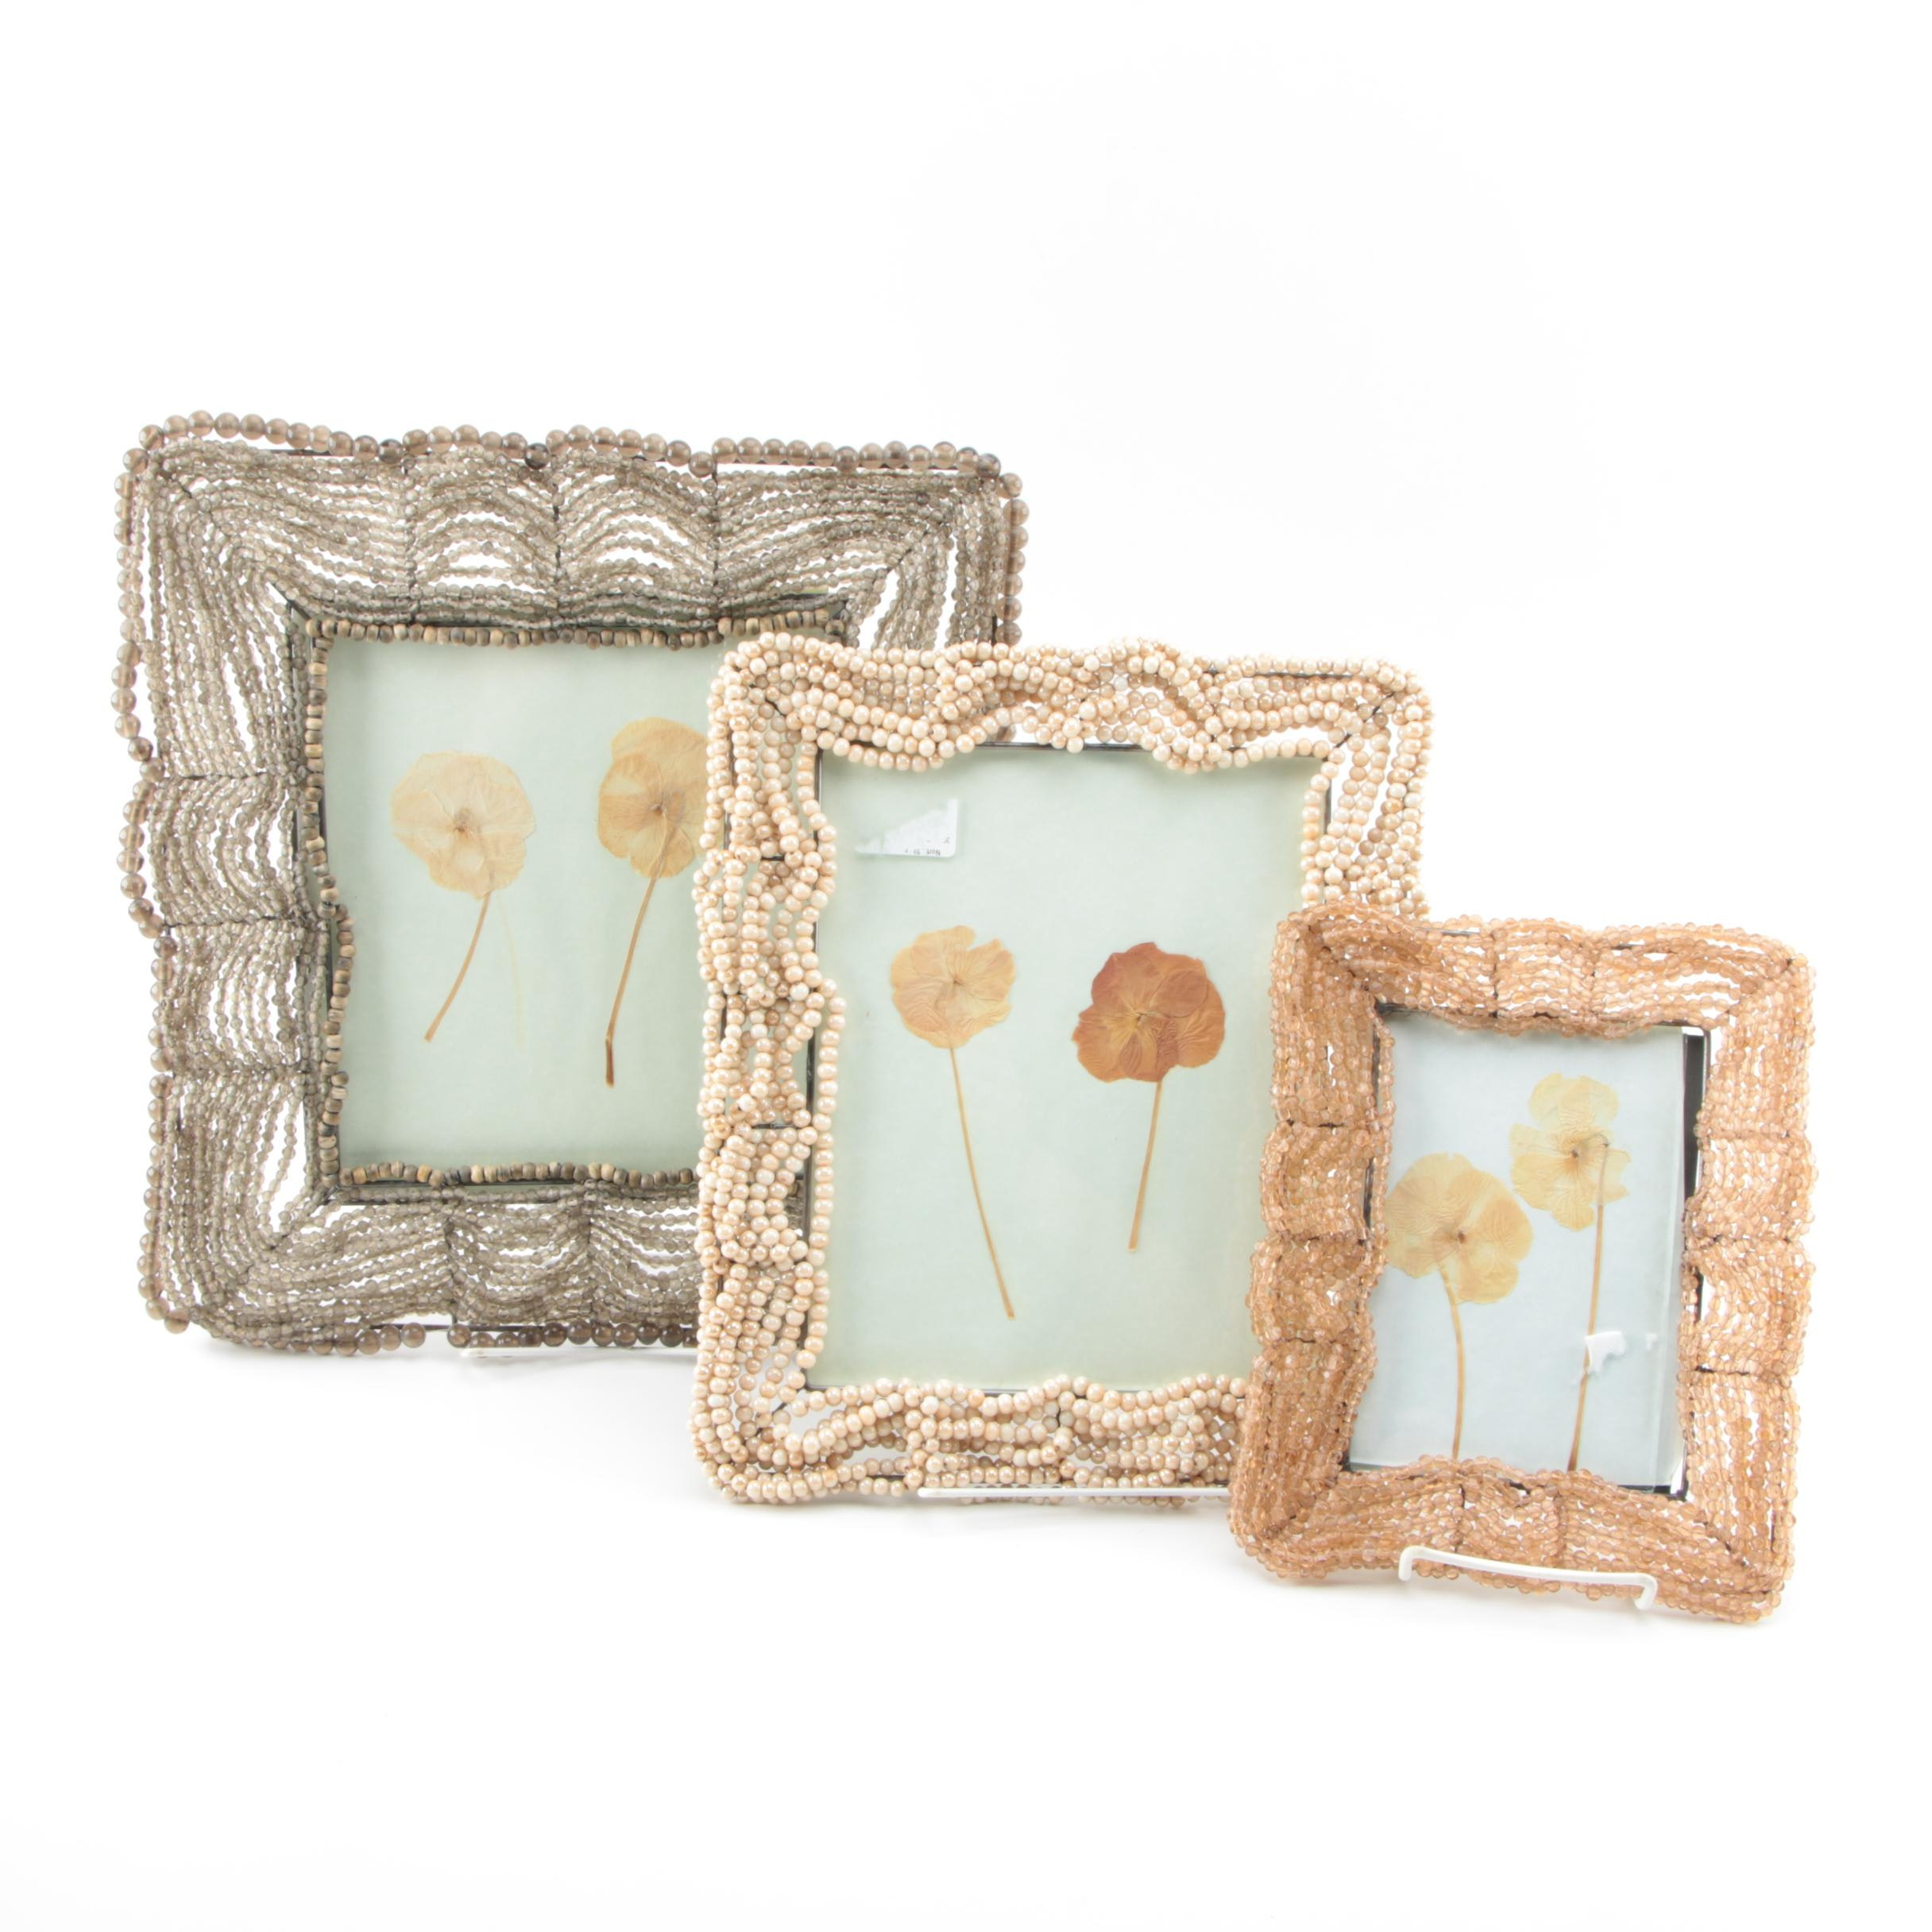 Glass Beaded Frames with Pressed Flowers